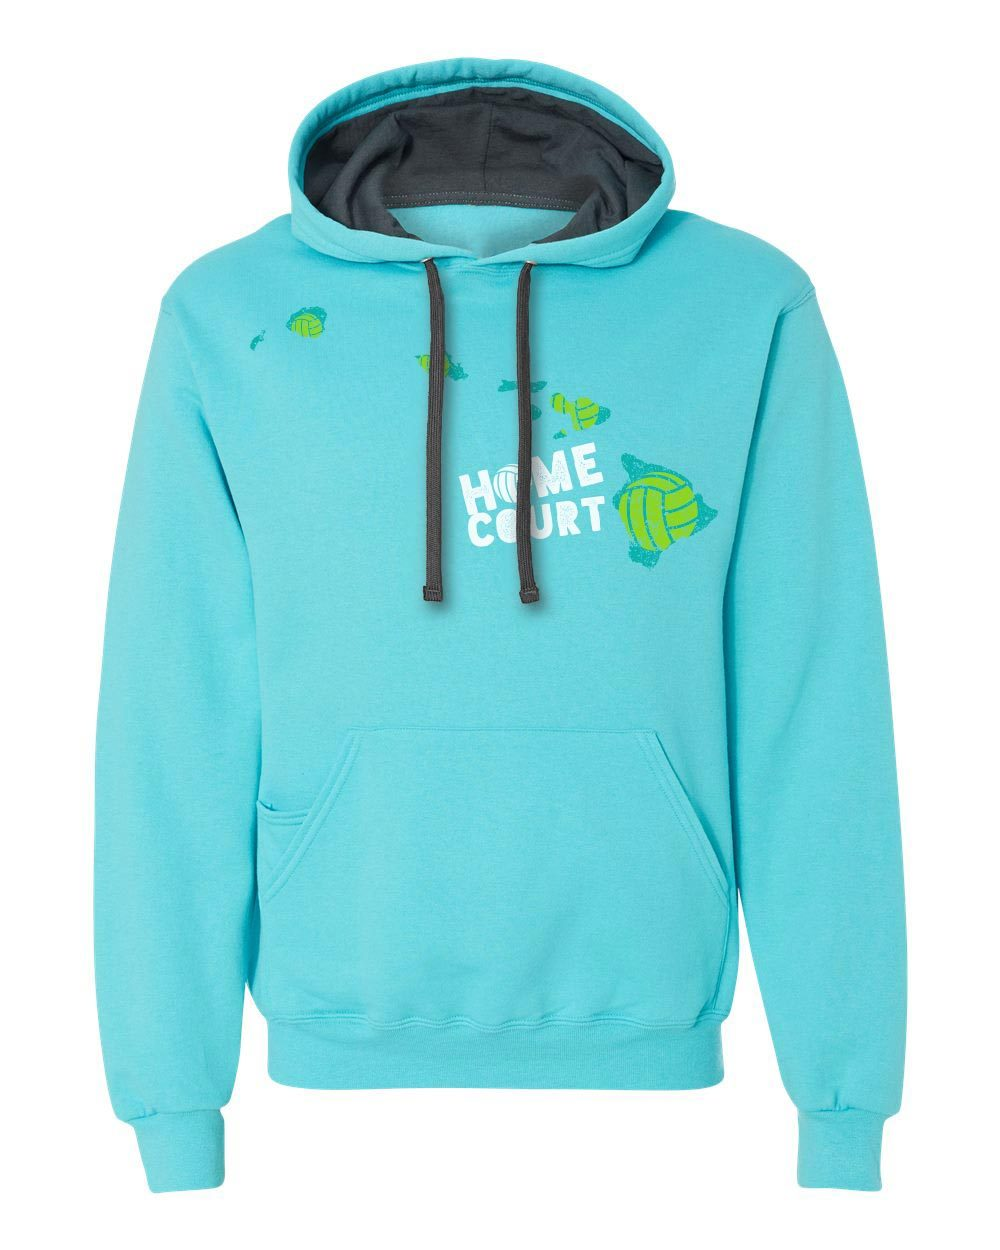 Hawaii: Home Court Hooded Sweatshirt - No Dinx Volleyball